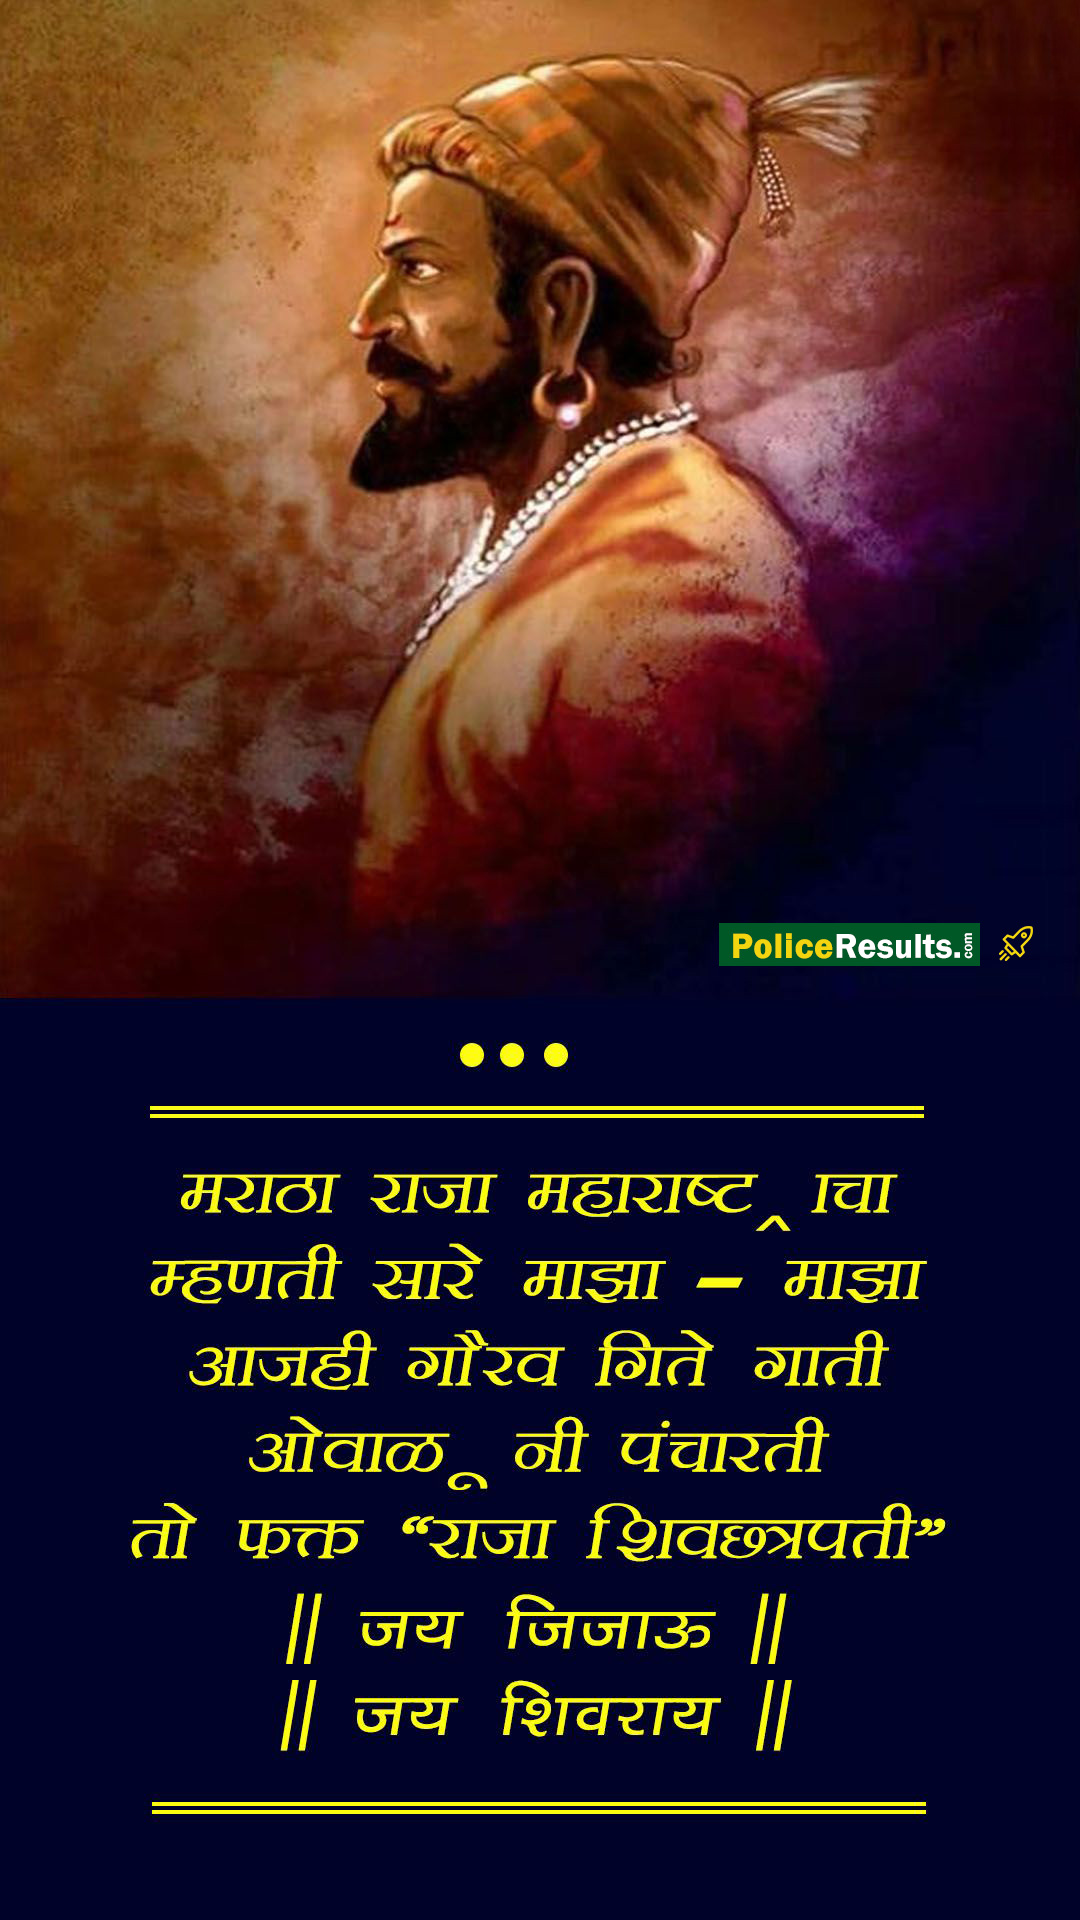 The Great Ruler Chhatrapati Shivaji Maharaj Quotation